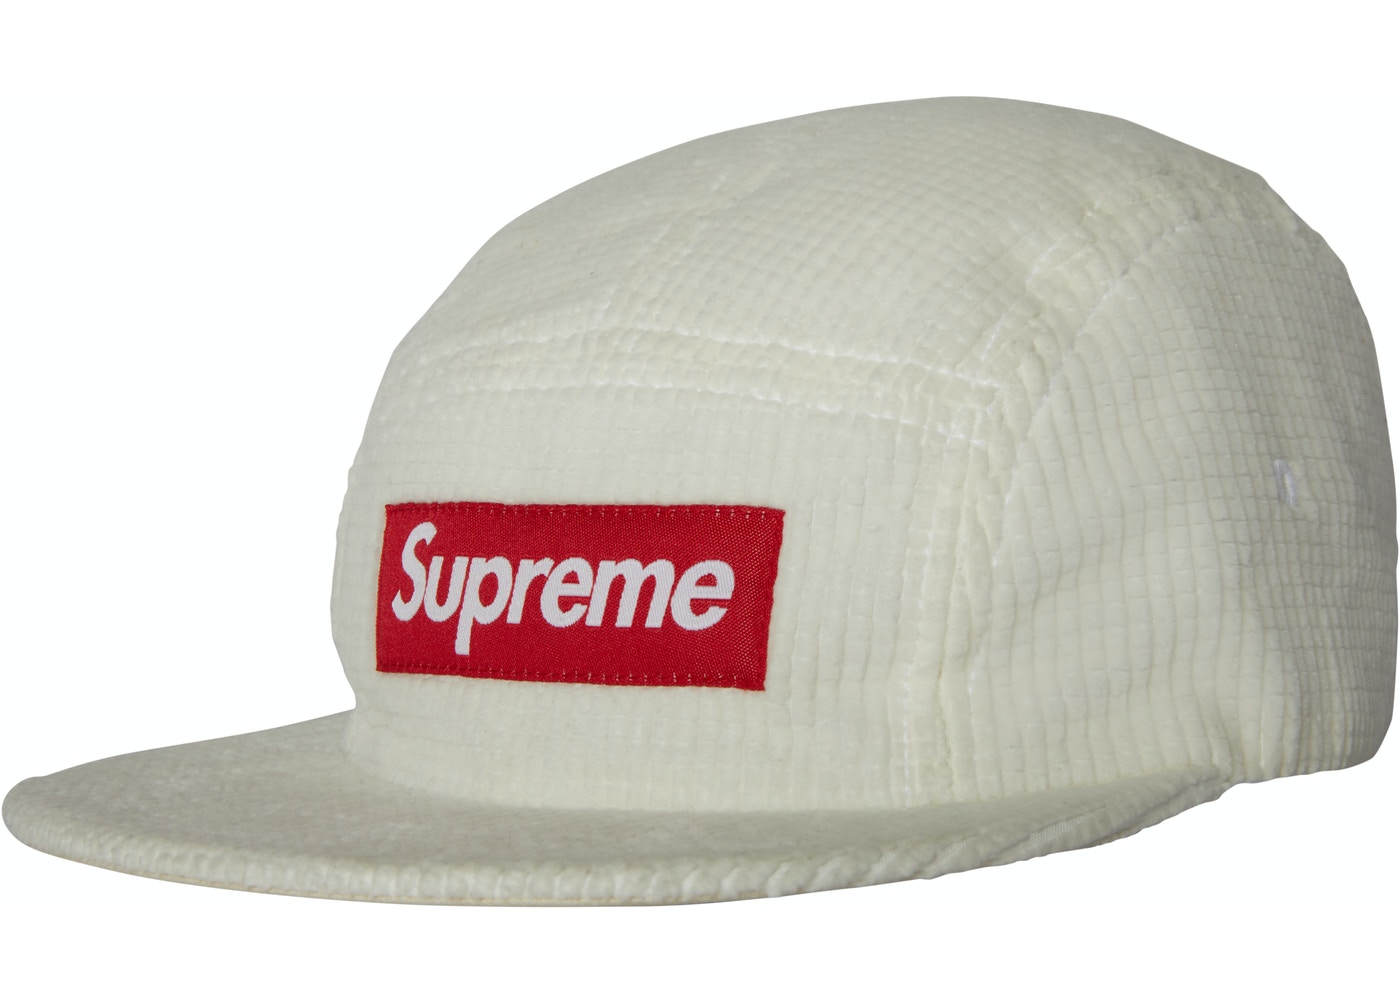 3466327eb29 Streetwear - Supreme Headwear - New Lowest Asks